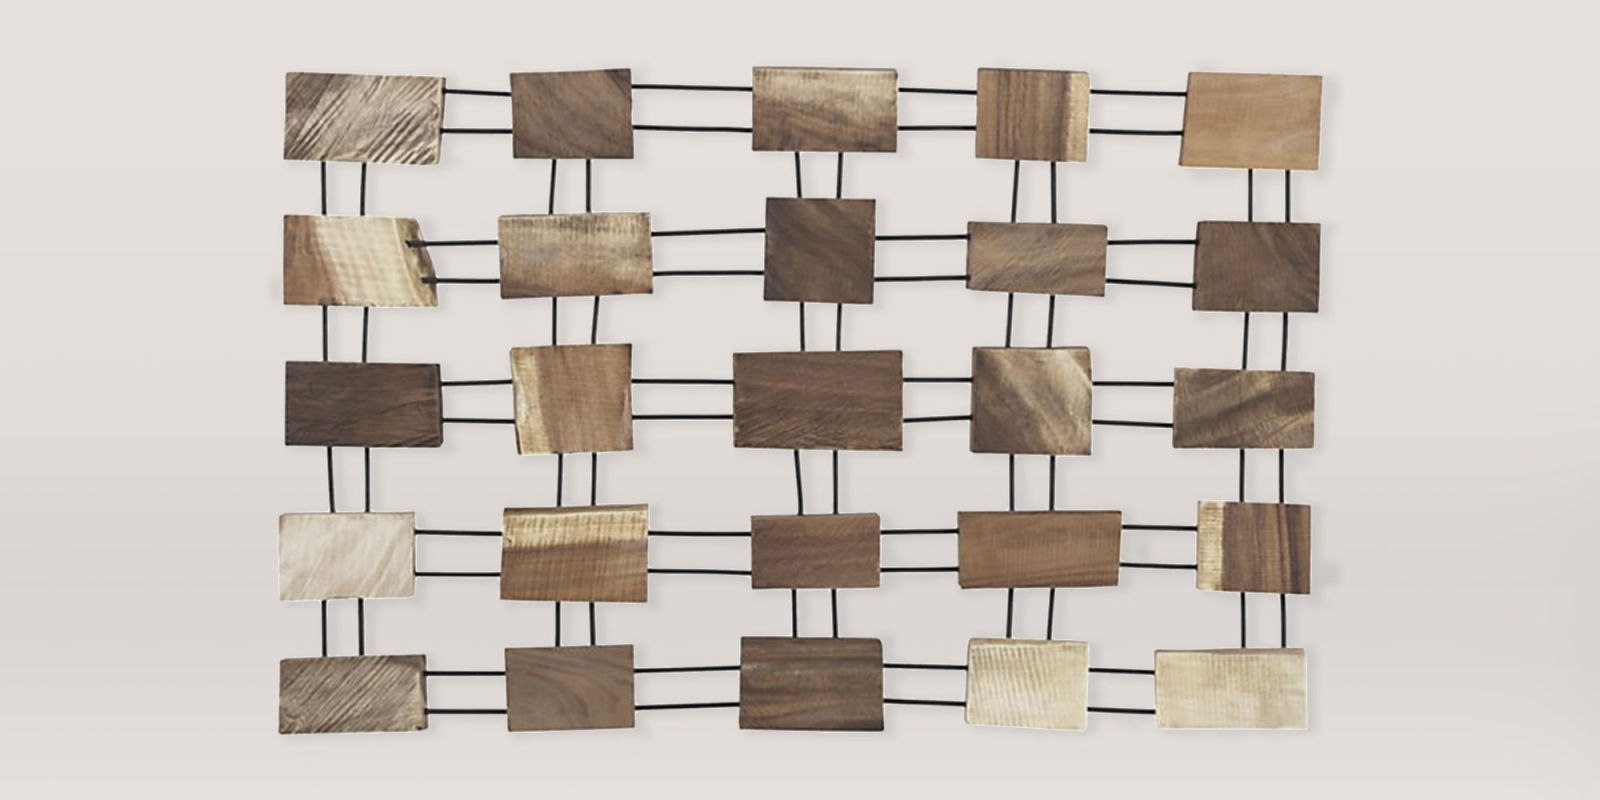 Famous Crate And Barrel Wall Art Intended For Crate And Barrel Teak Wall Art — Teak Furnituresteak Furnitures (View 1 of 20)